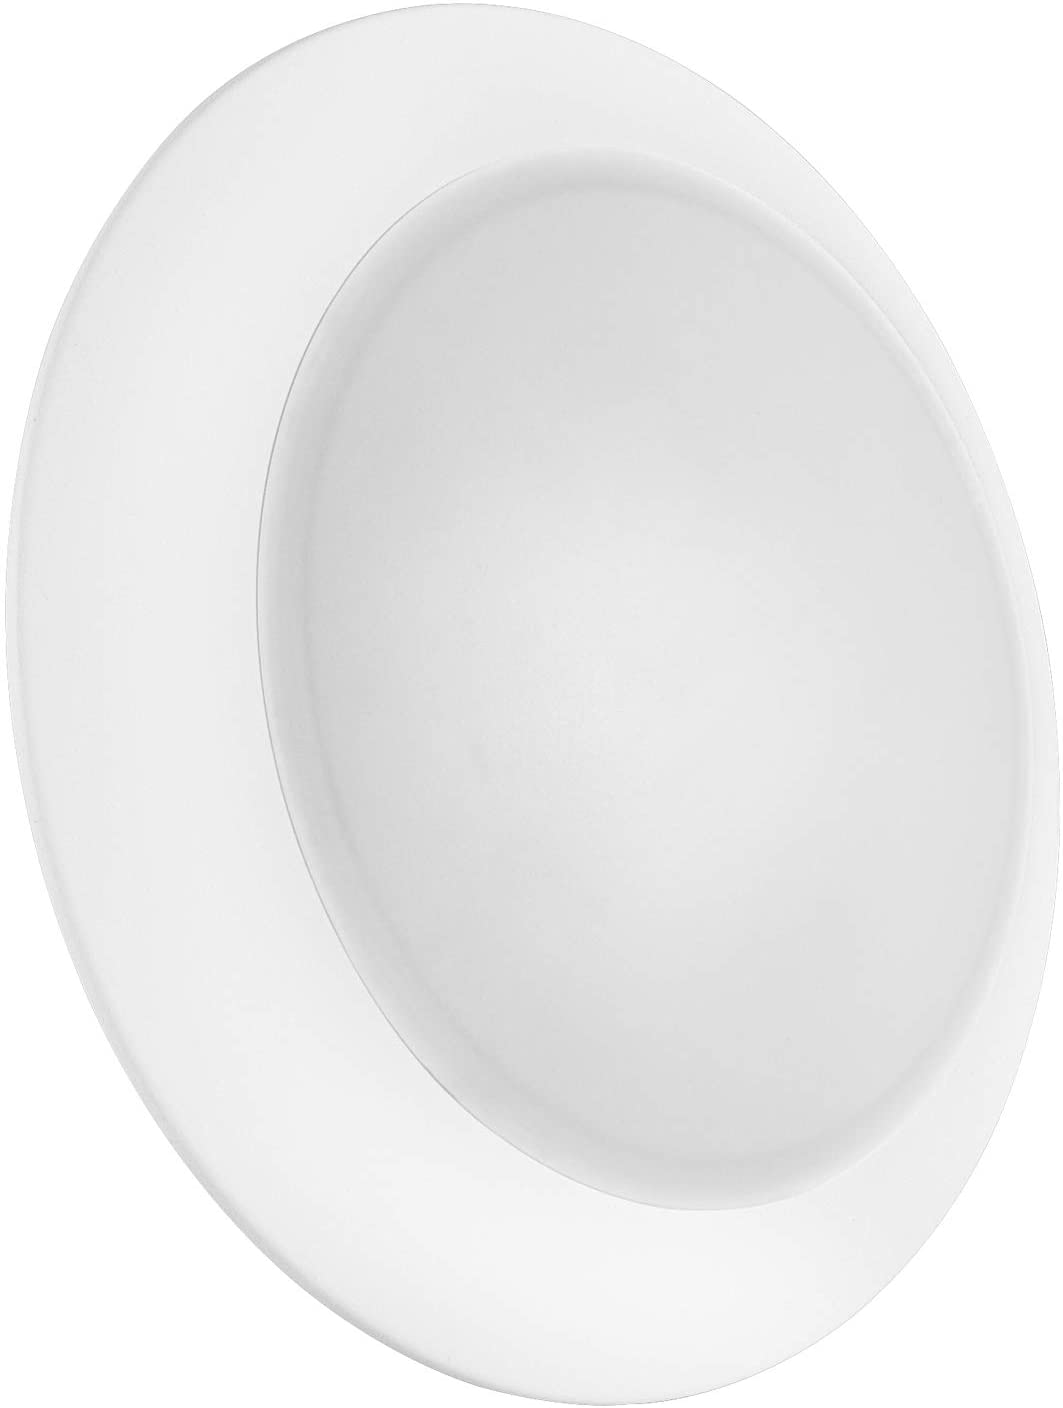 Luxrite 8 Inch LED Disk Light, 27W, 3000K Soft White, 2000 Lumens, Dimmable, Surface Mount LED Ceiling Light, Wet Rated, Energy Star, ETL Listed, Low Profile Flush Mount Light Fixture